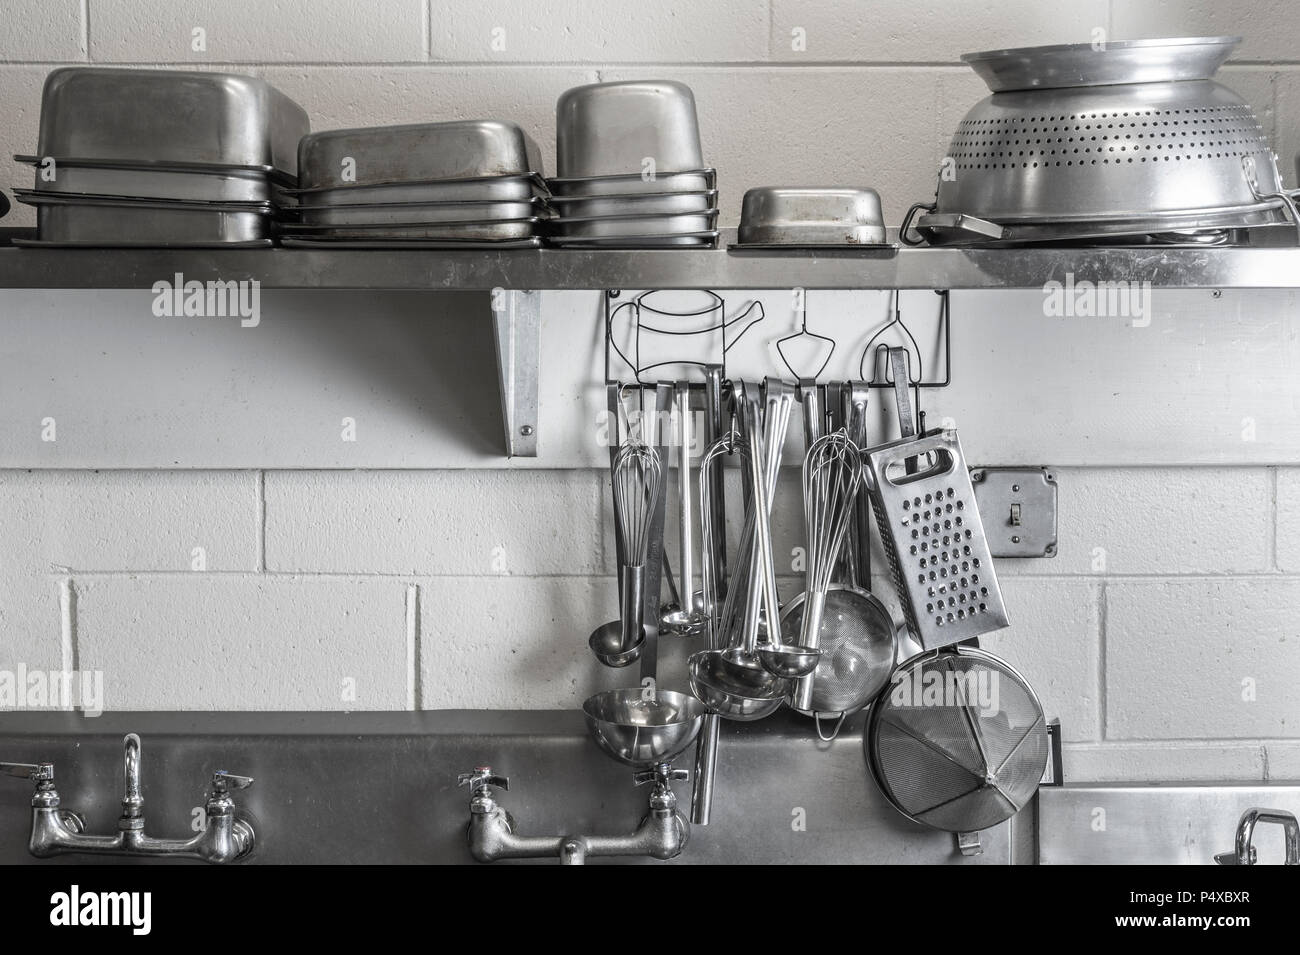 Restaurant Commercial Kitchen Stainless Steel Cooking Utensils Stock Photo Alamy